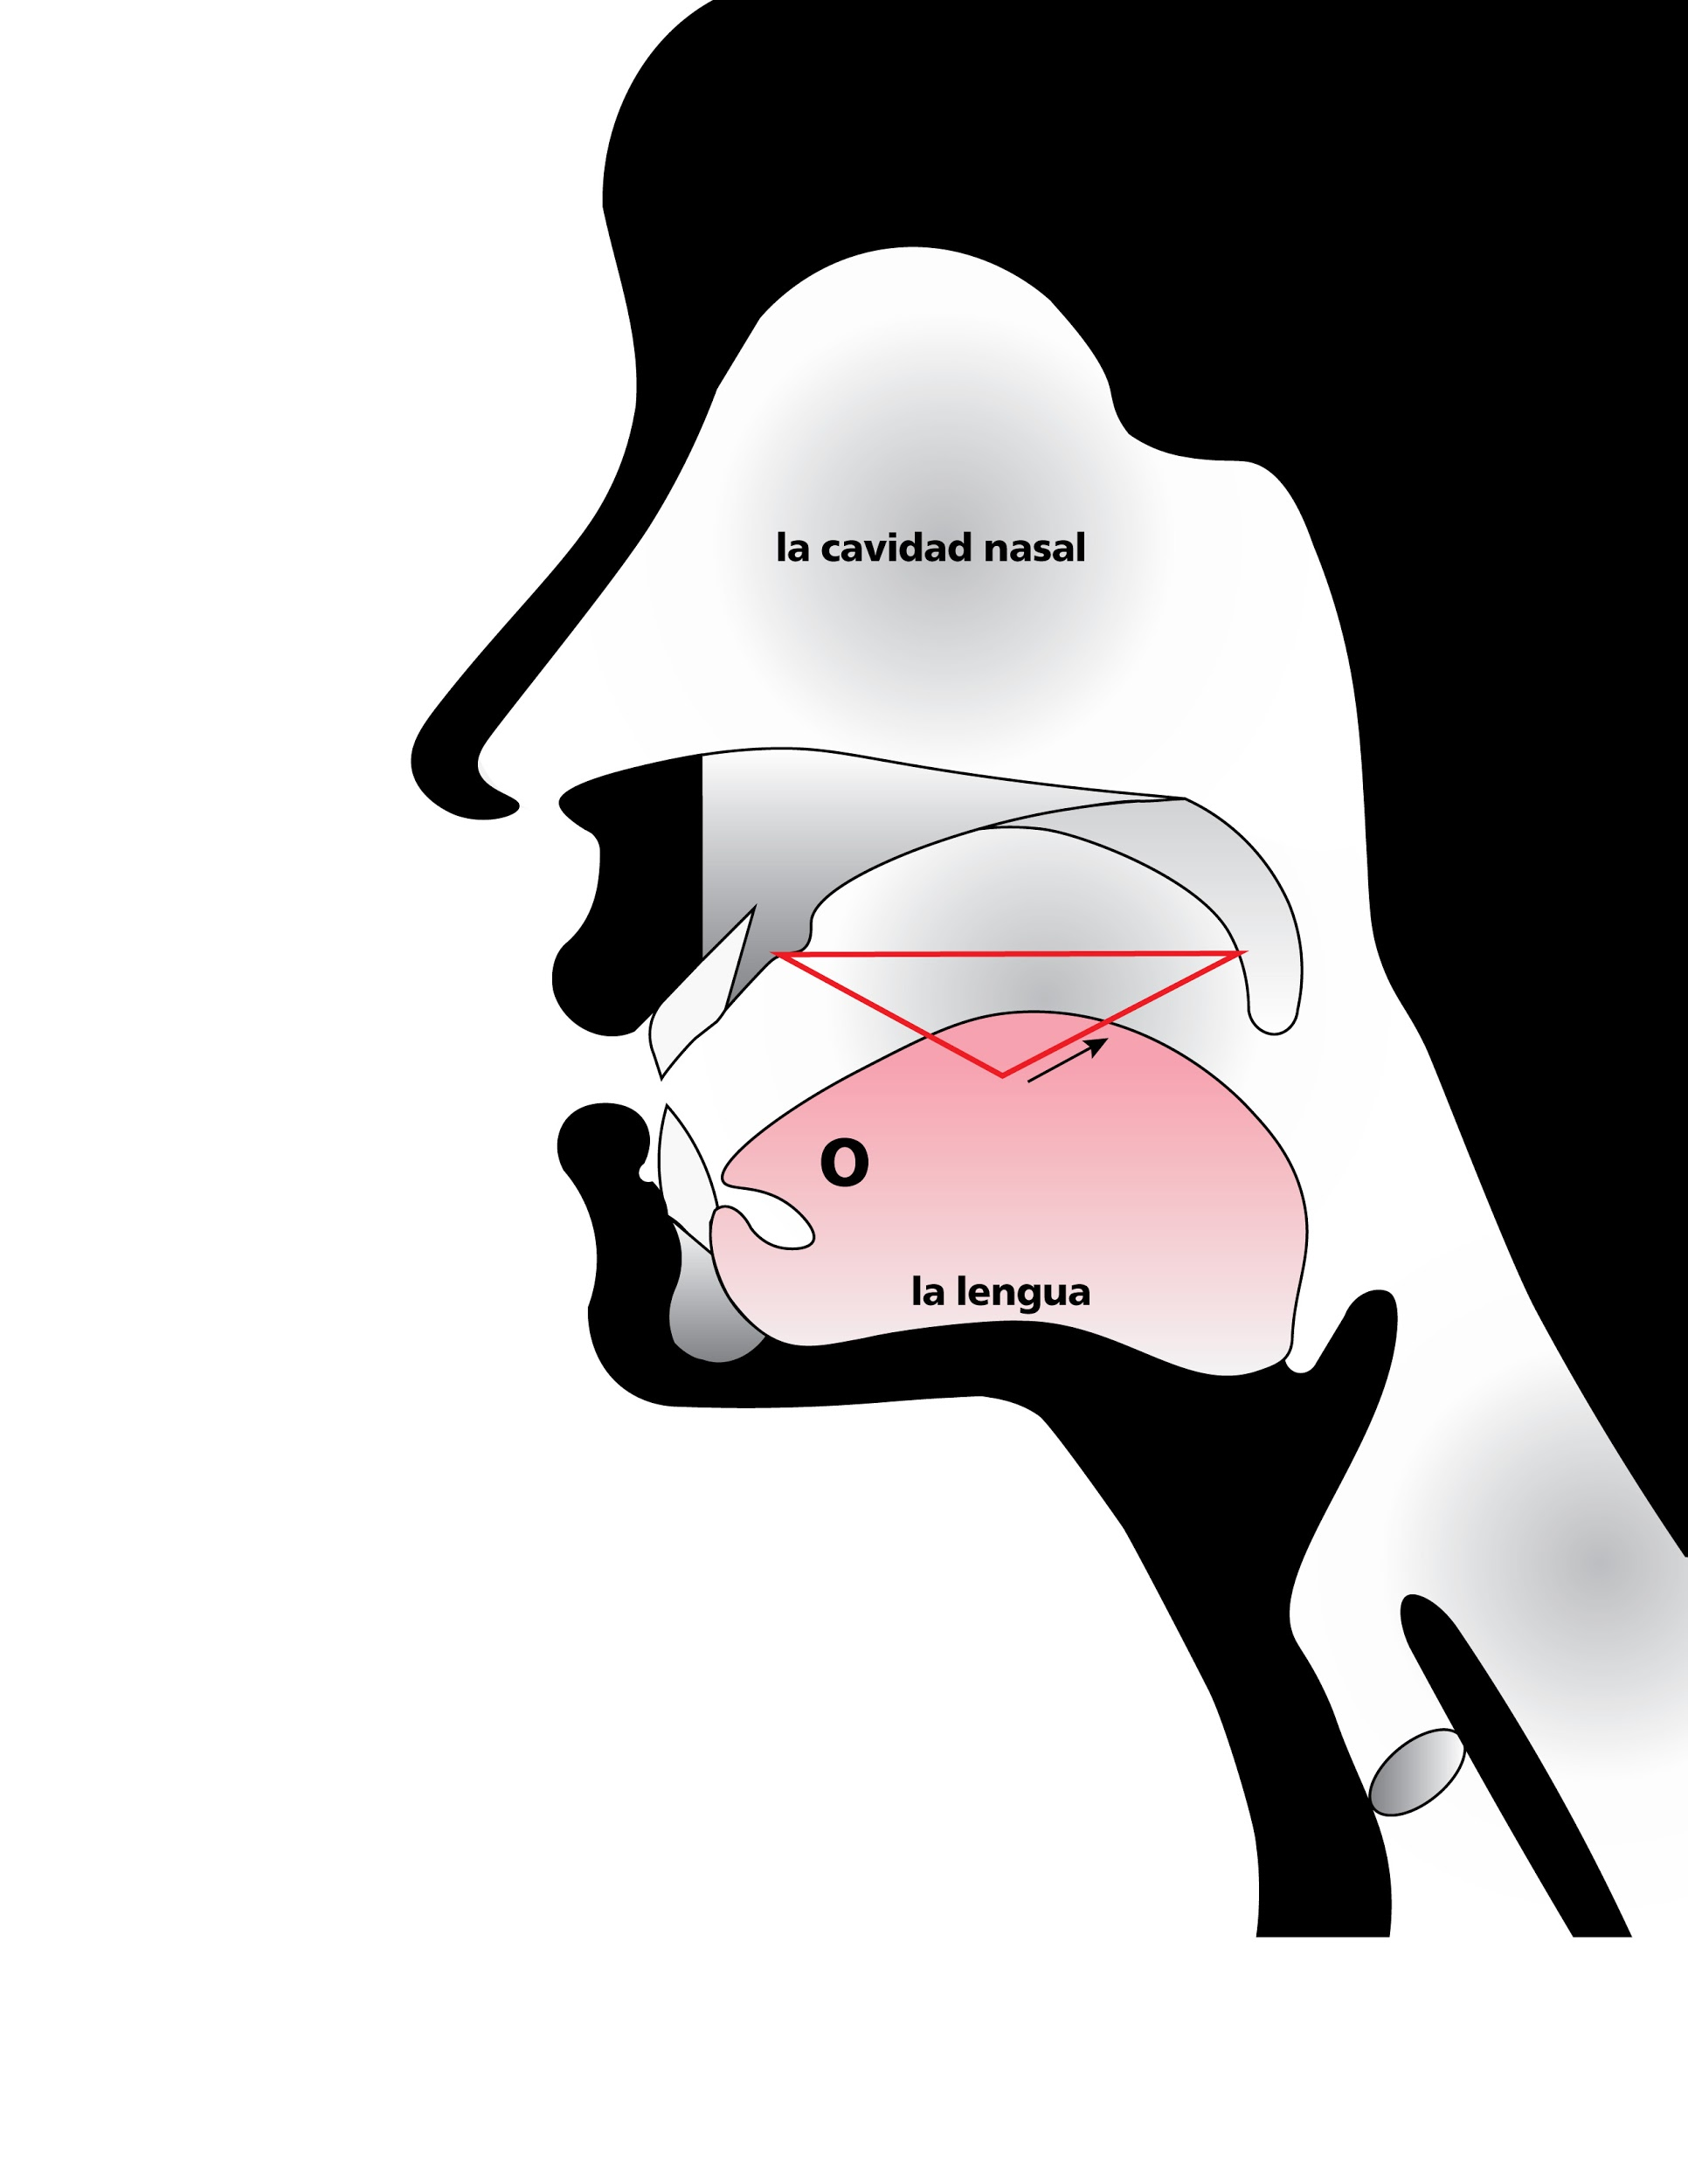 Anatomical sketch of head while speaking, emphasizing space of roof of mouth when tongue partly lowered, in Spanish